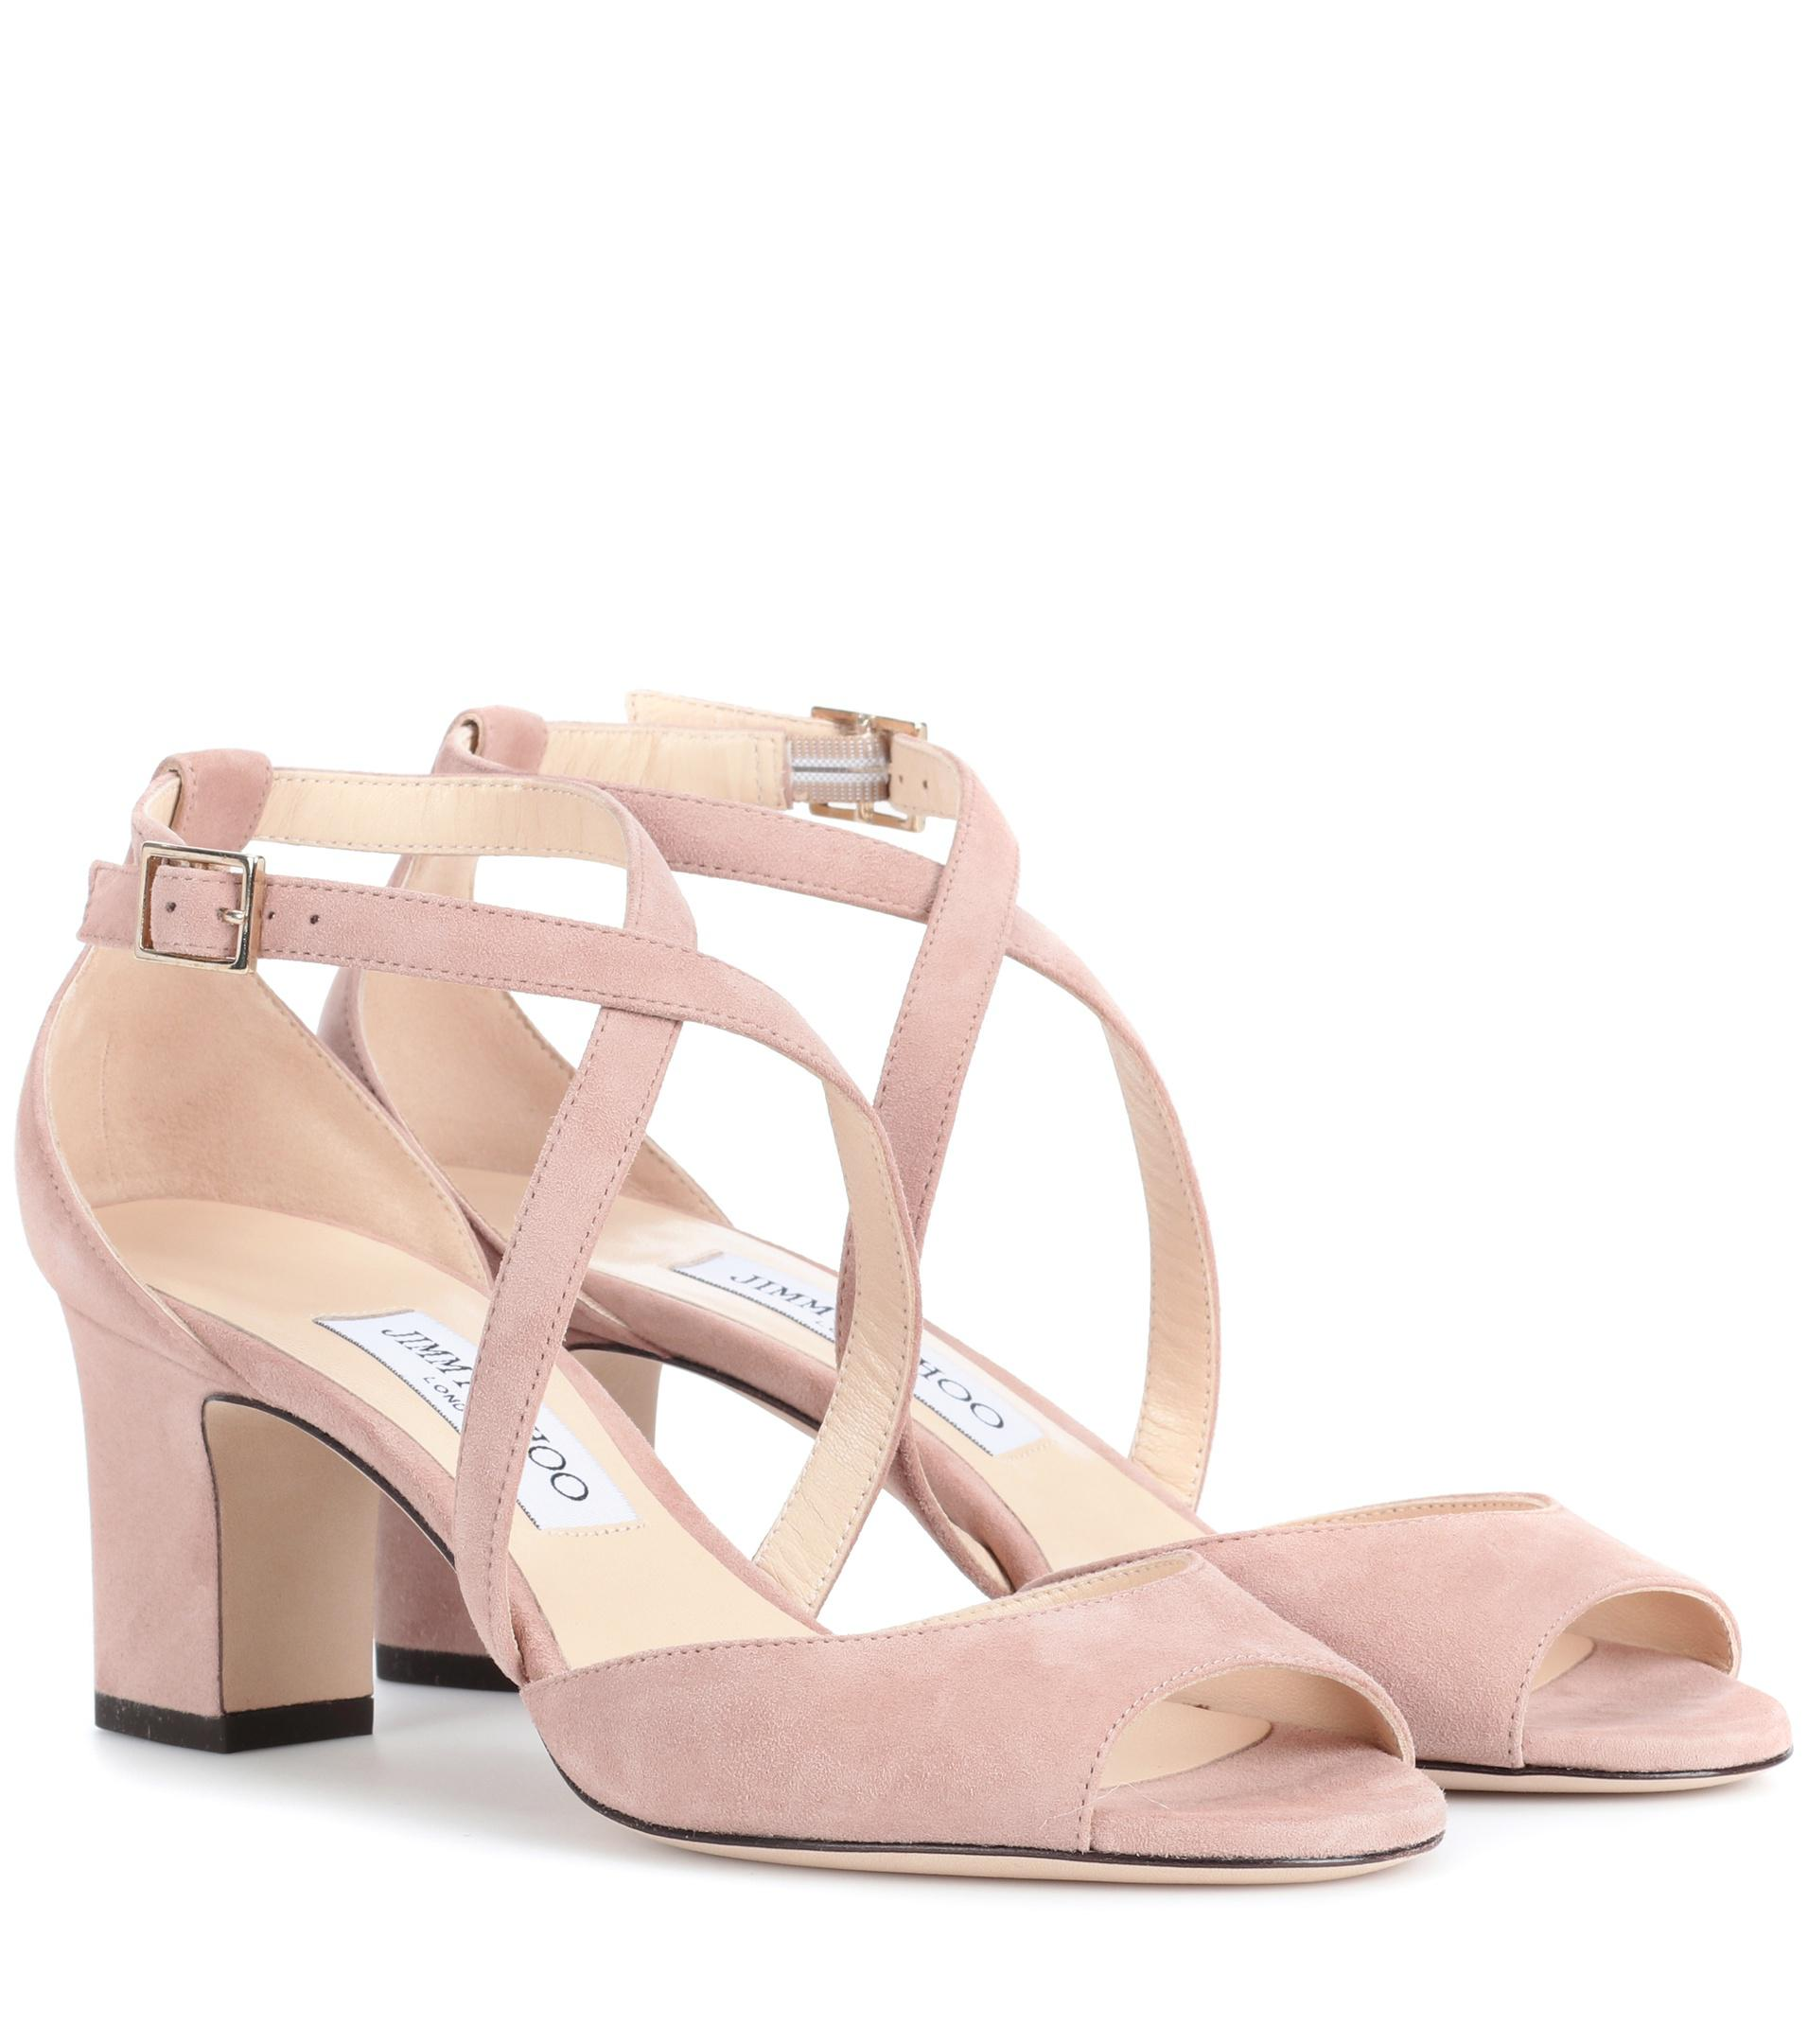 6f18d2bab424 Jimmy Choo Carrie 65 Suede Sandals in Pink - Lyst